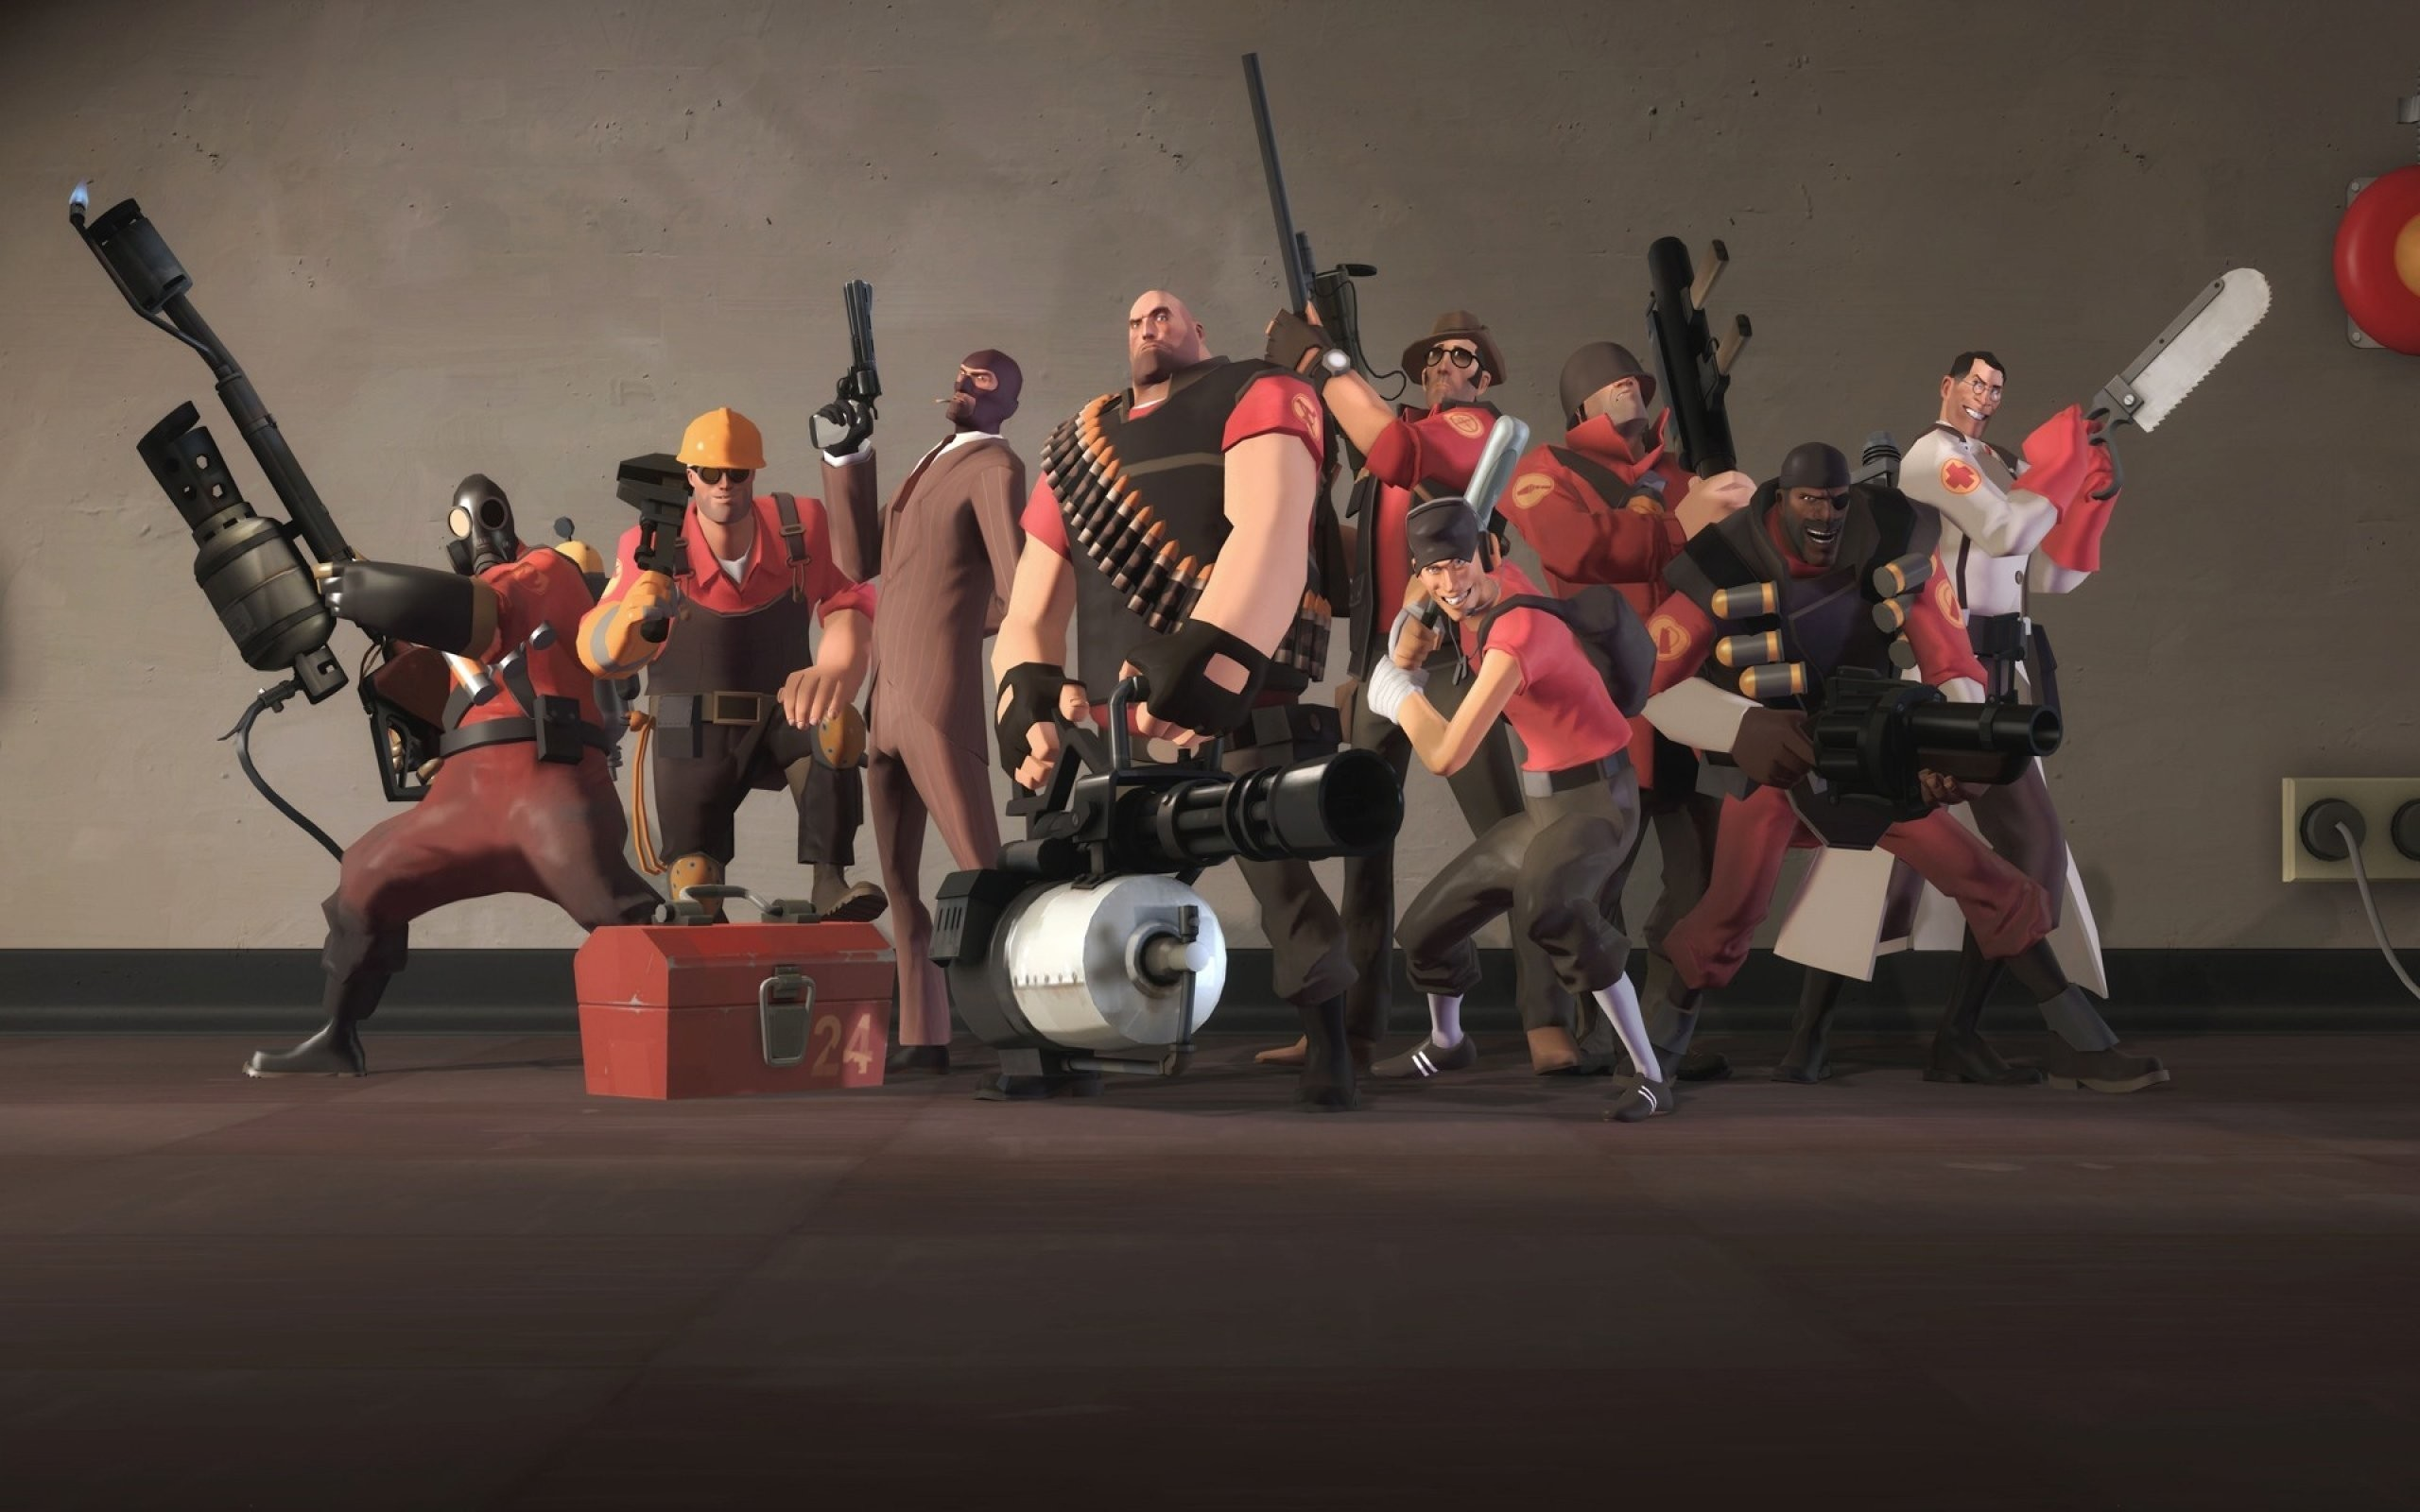 2560x1600 Image - Team Fortress 2 Background ...